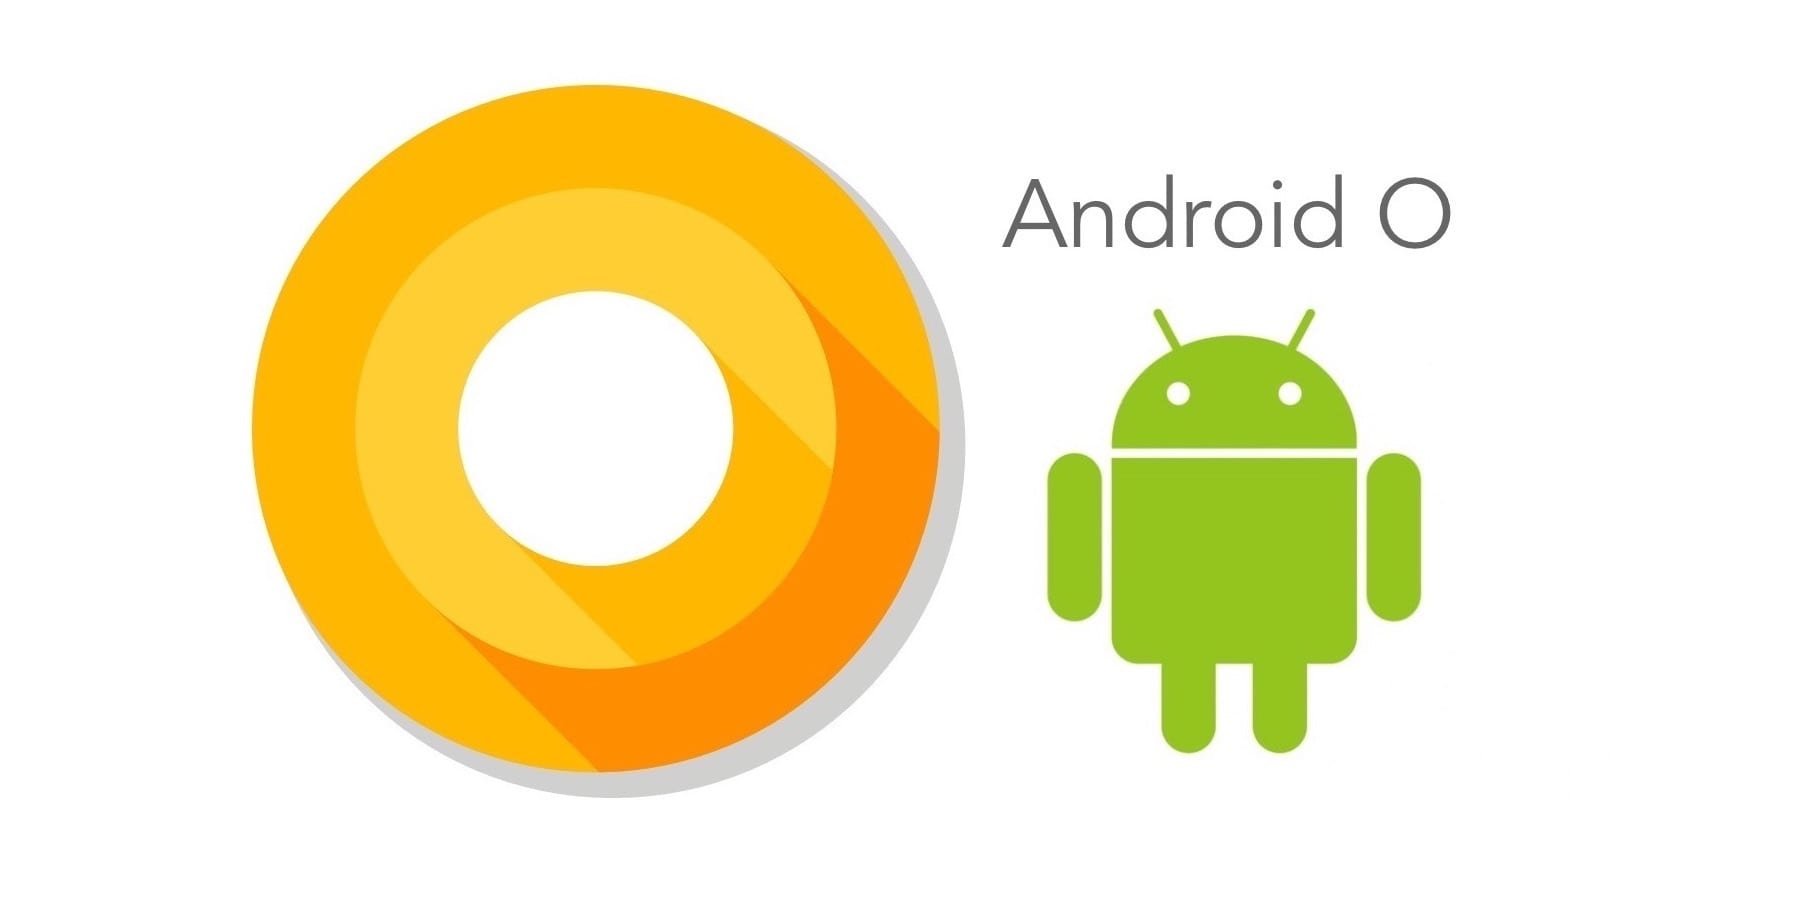 Android O - project treble android project treble android o android güncellemeleri Android